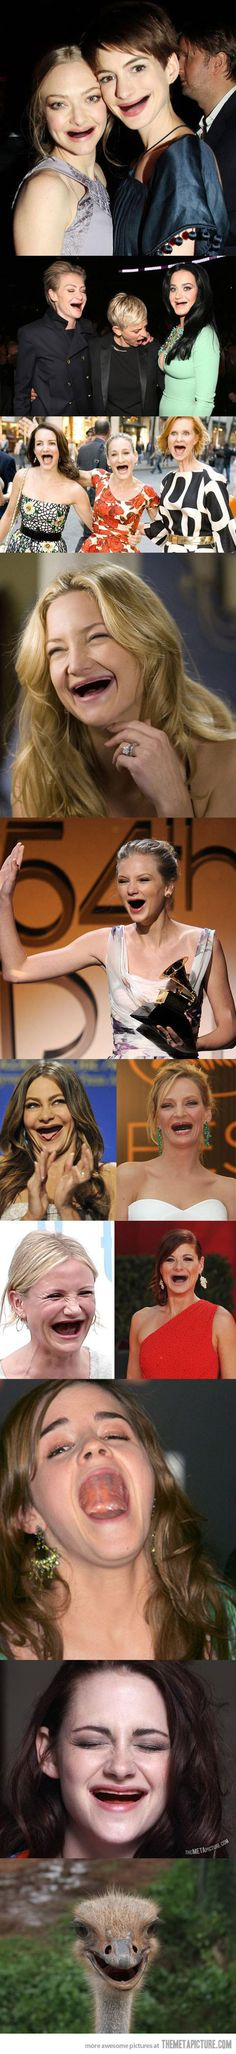 actresses without teeth...lmao!